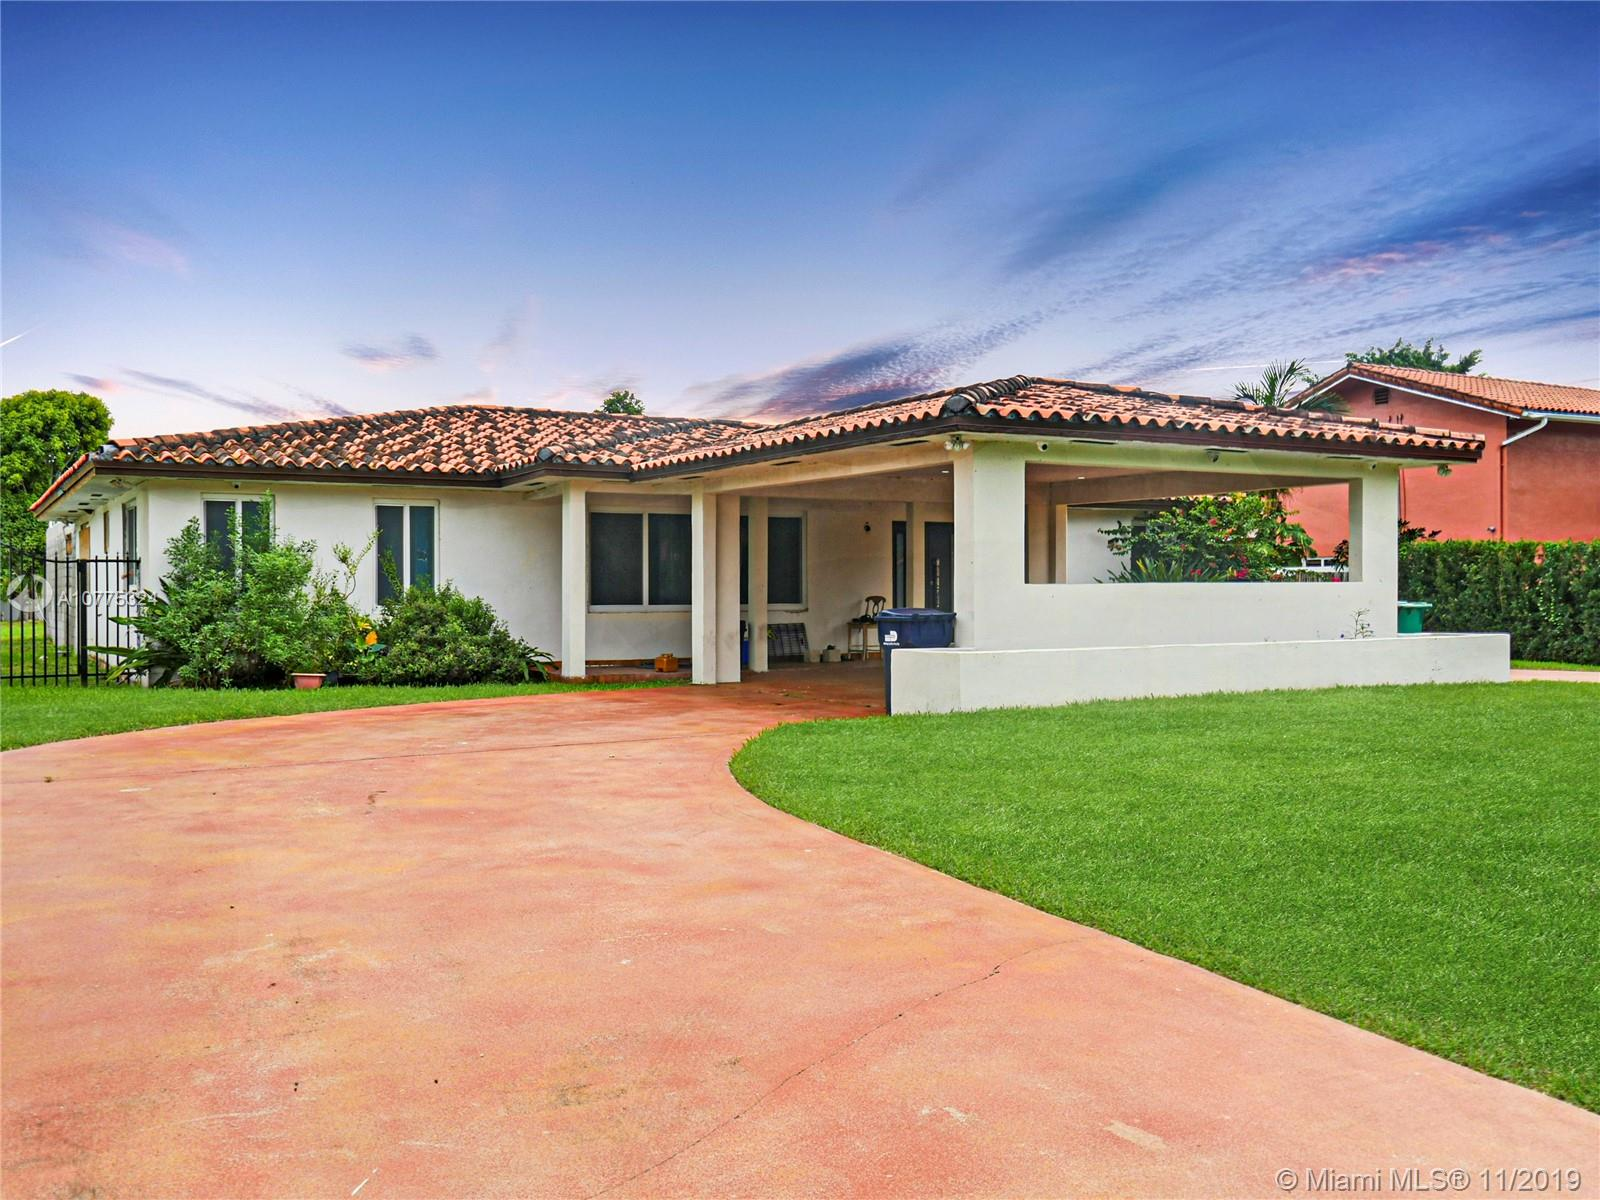 3435 SW 128th Ave, Kendall in Miami-dade County County, FL 33175 Home for Sale